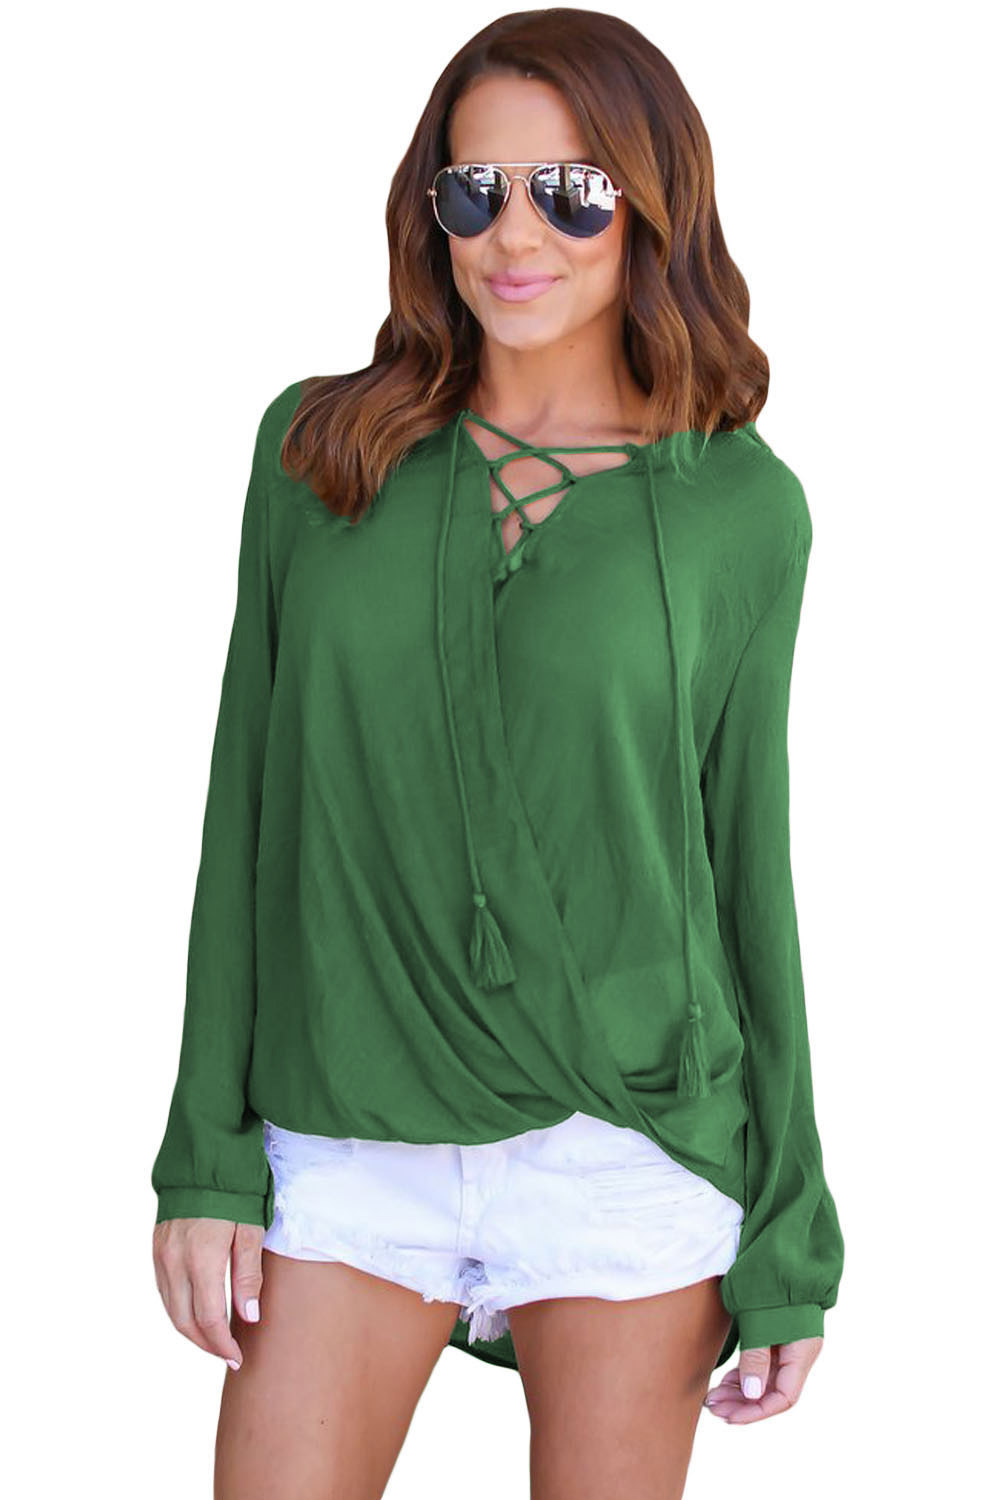 Olive bamboo lace up blouse lc250325 9 23505